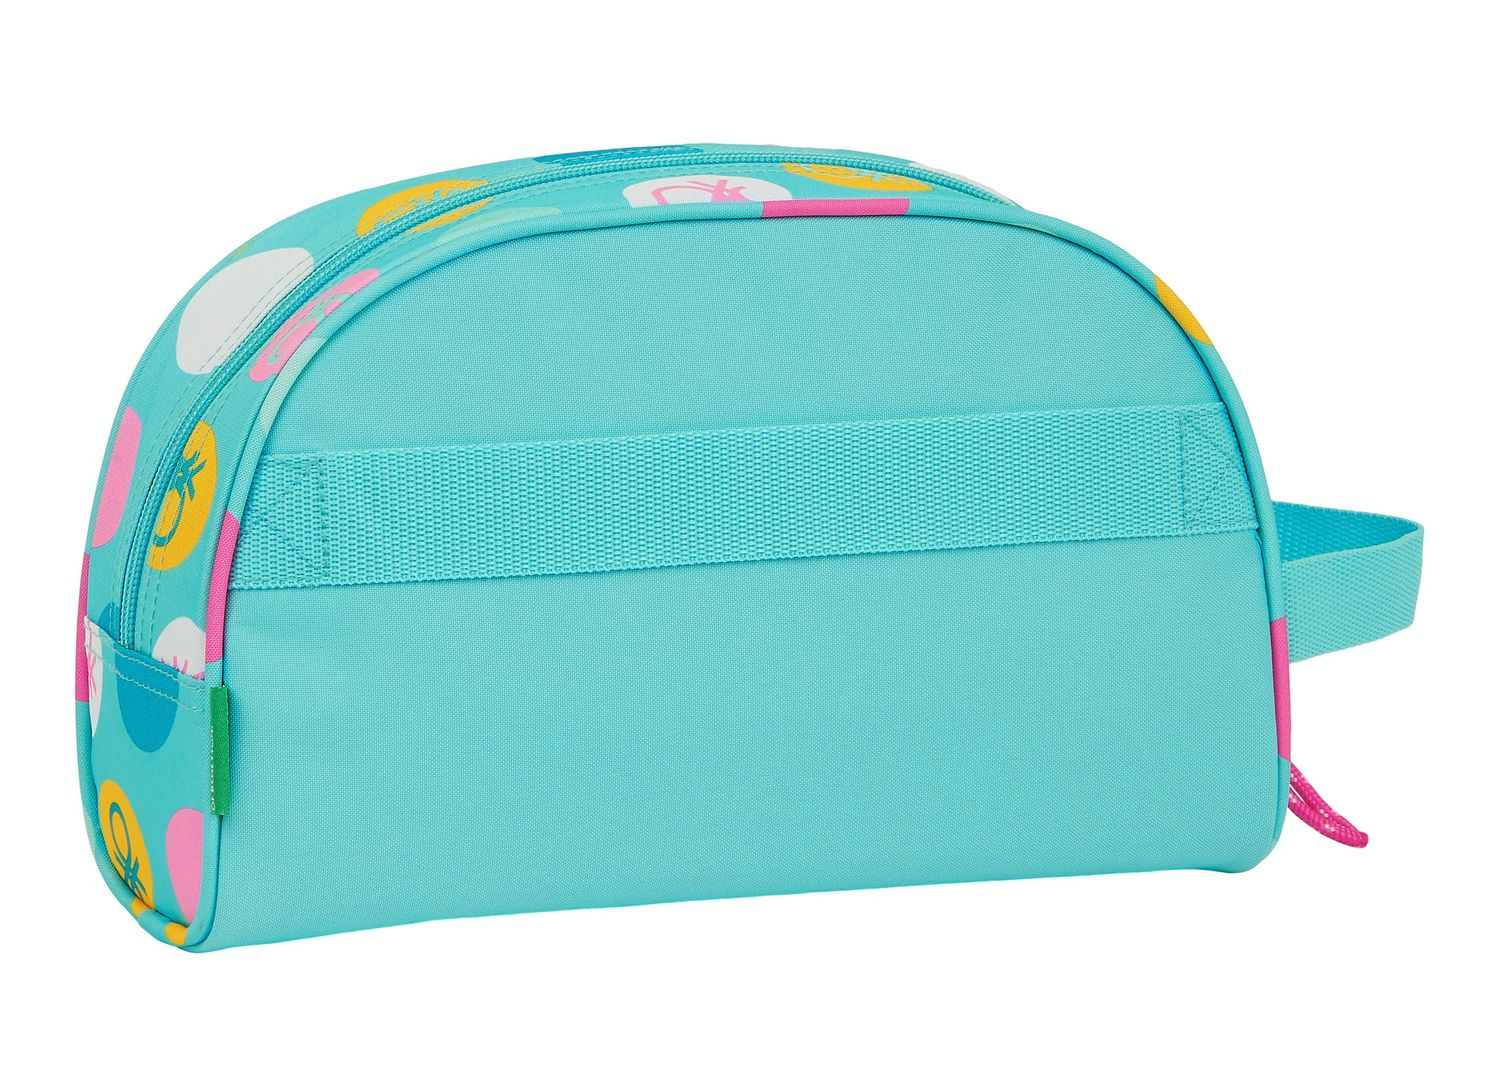 BENETTON Turquoise POLKA DOTS Toiletry Bag Beauty Case – image 3